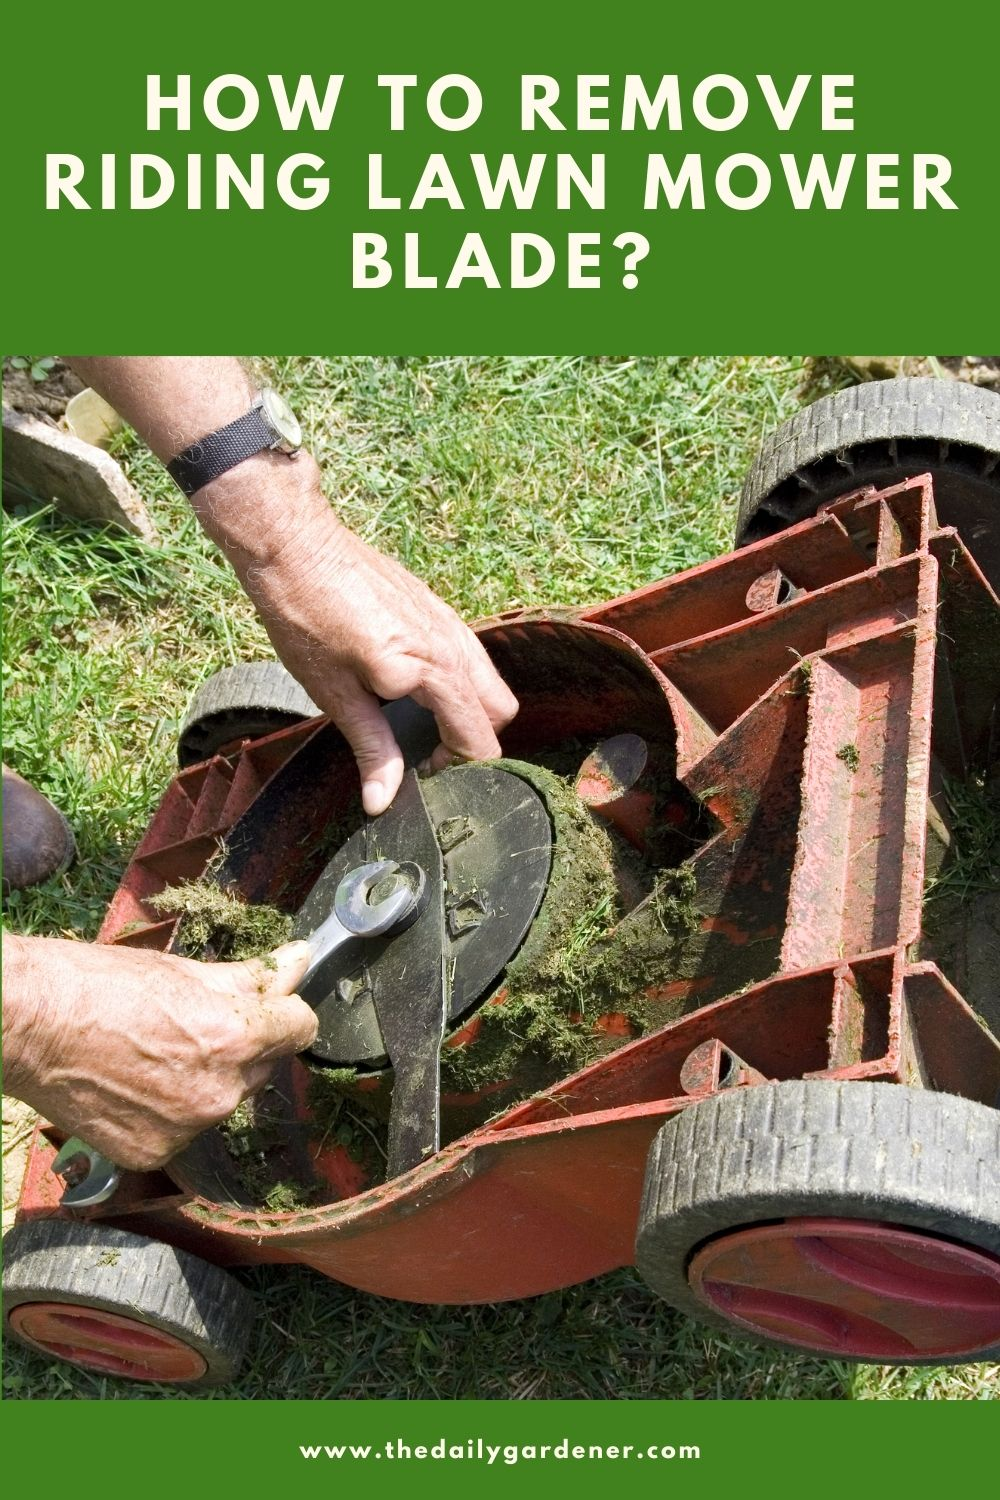 How to Remove Riding Lawn mower Blade 1